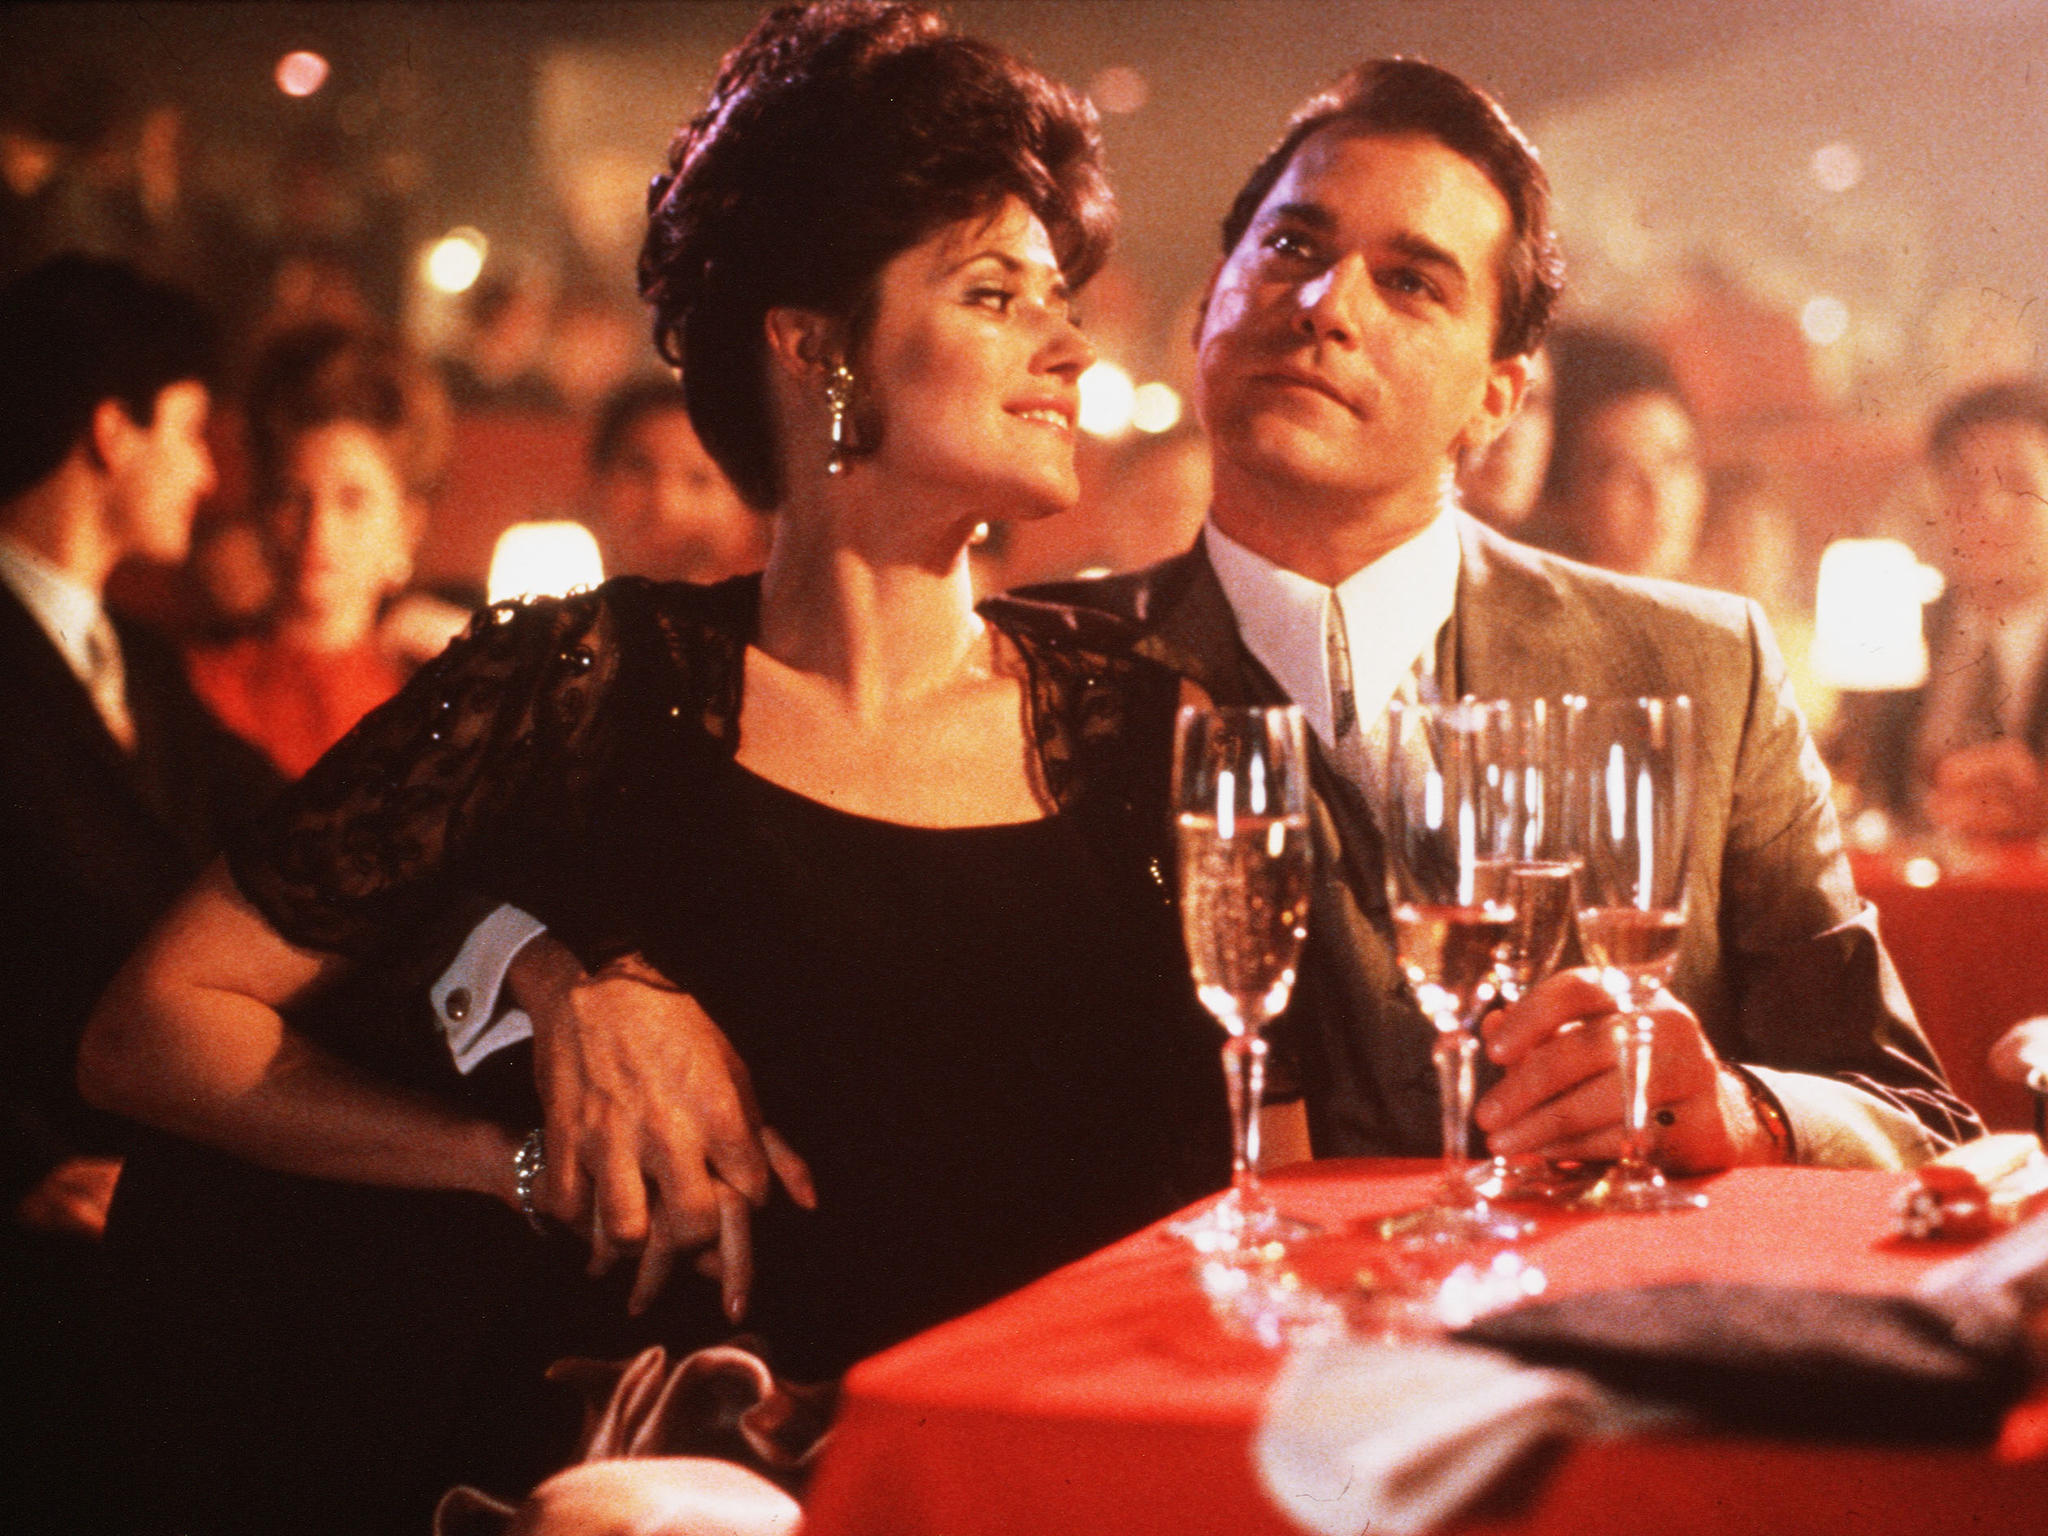 Lorraine Bracco and Ray Liotta in 'Goodfellas'